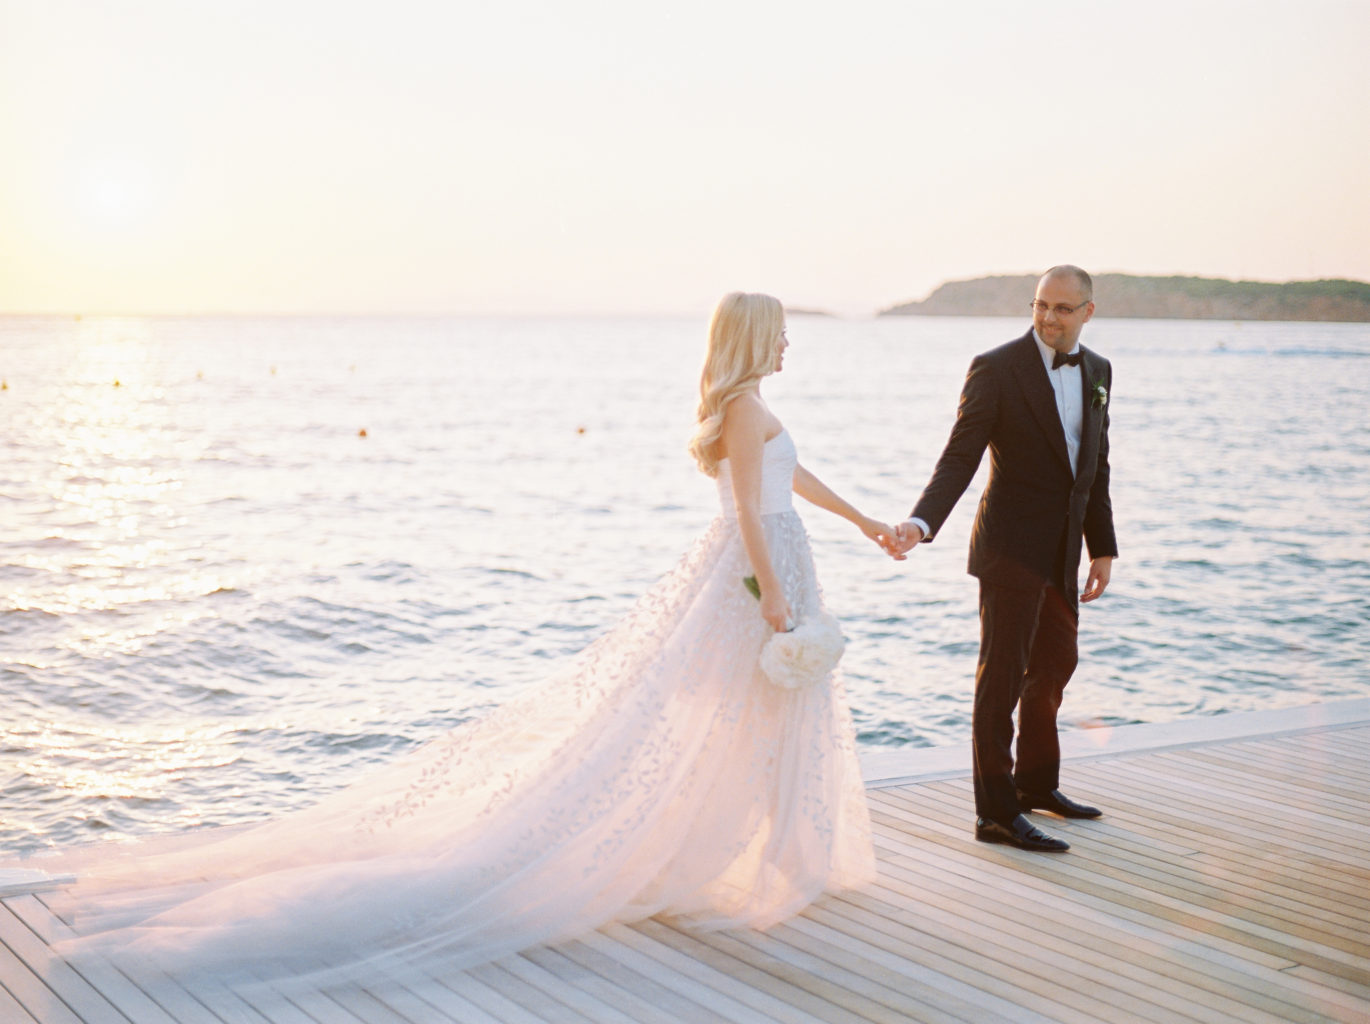 Destination wedding photography guide